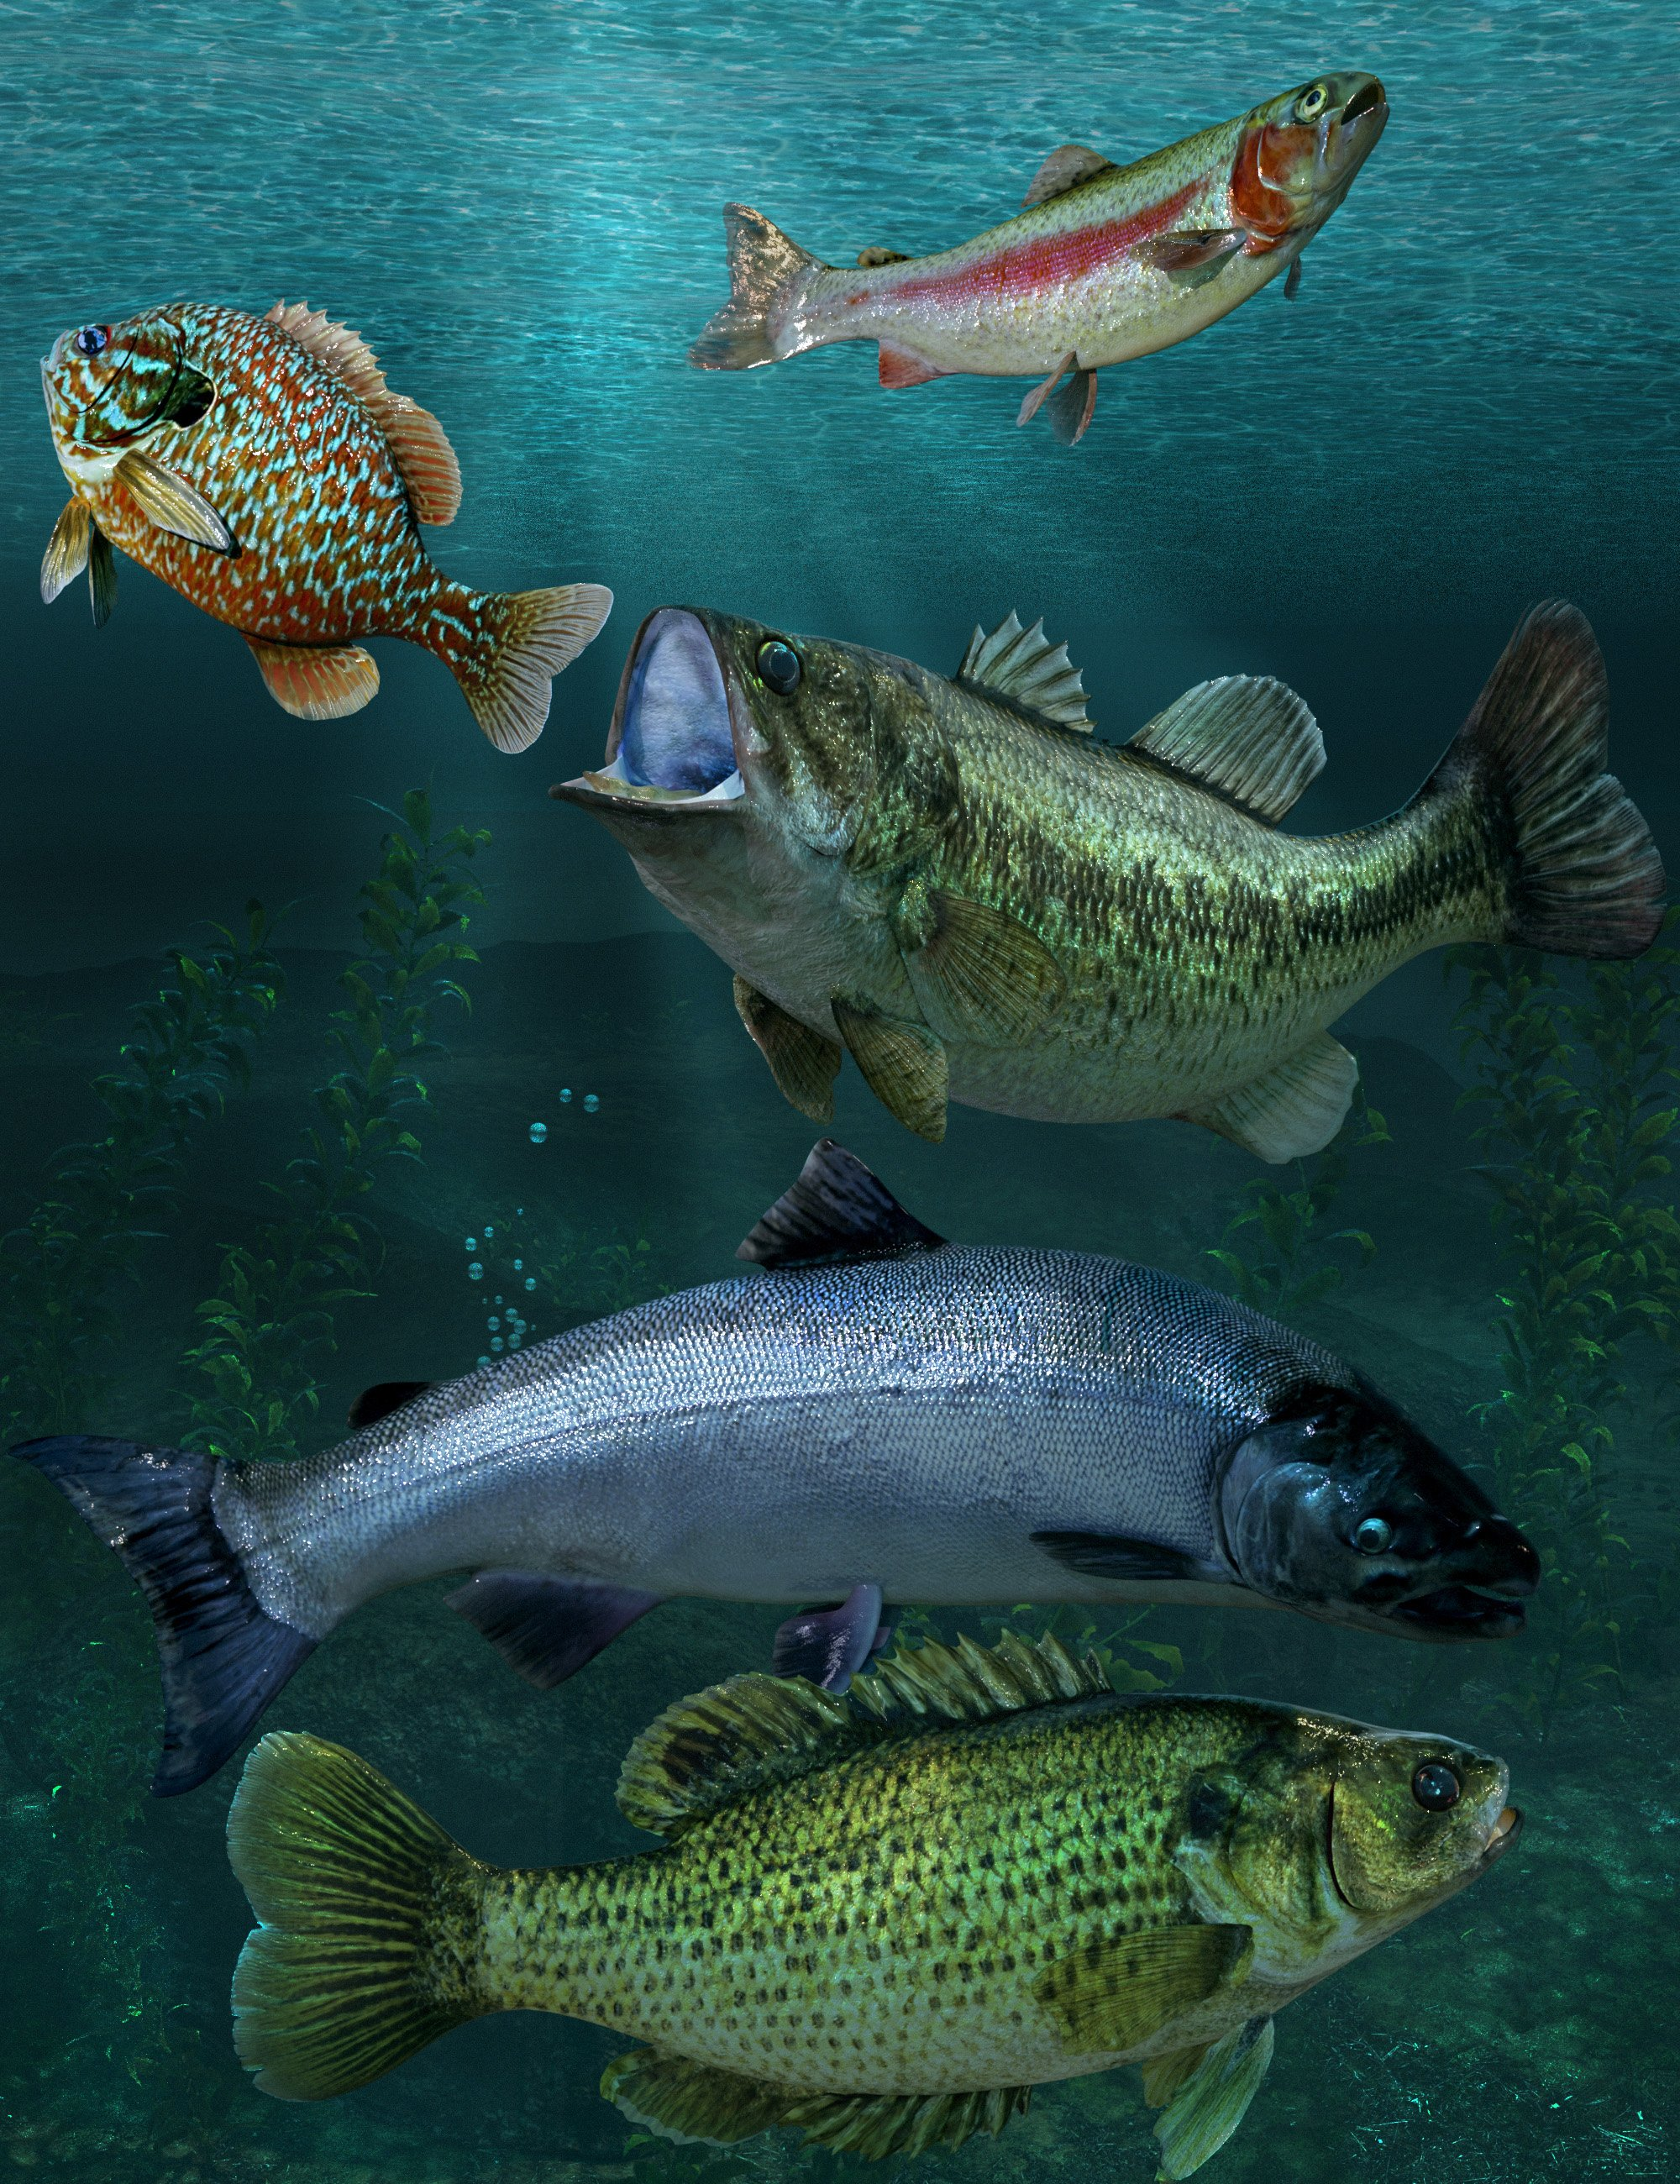 Freshwater Game Fish by: The Alchemist, 3D Models by Daz 3D